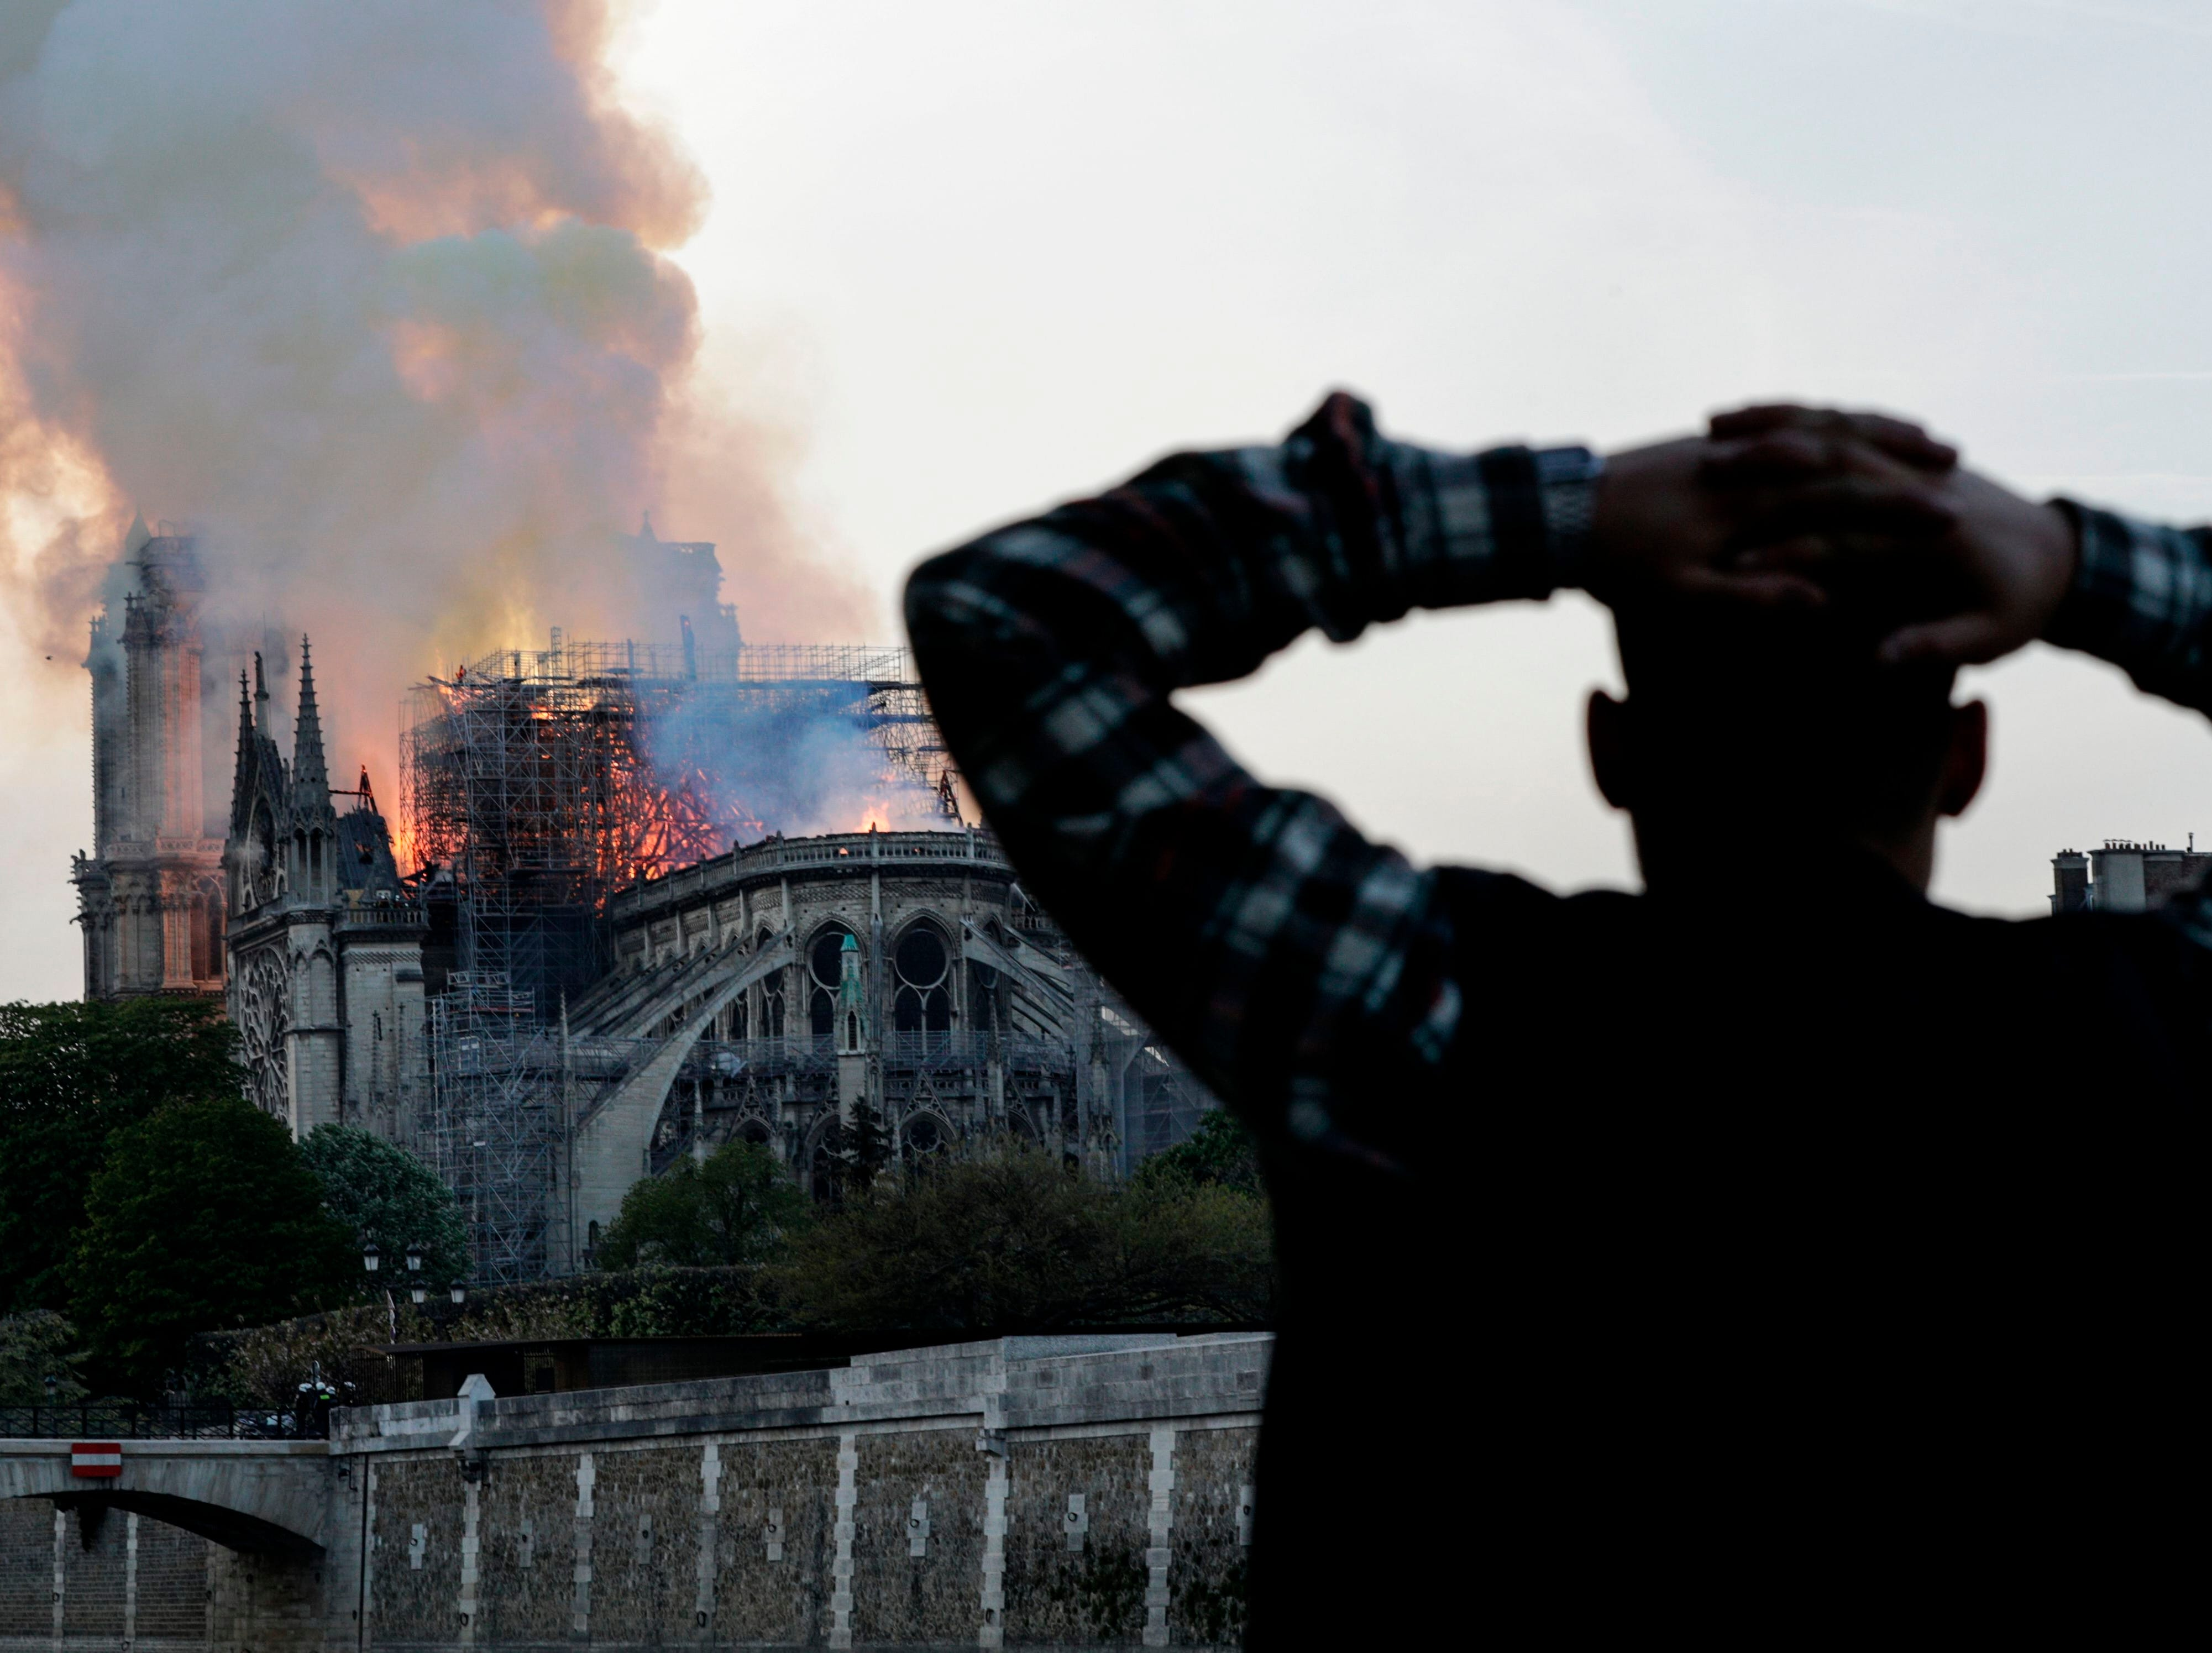 A man watches the landmark Notre-Dame Cathedral burn, engulfed in flames, in central Paris on April 15, 2019.